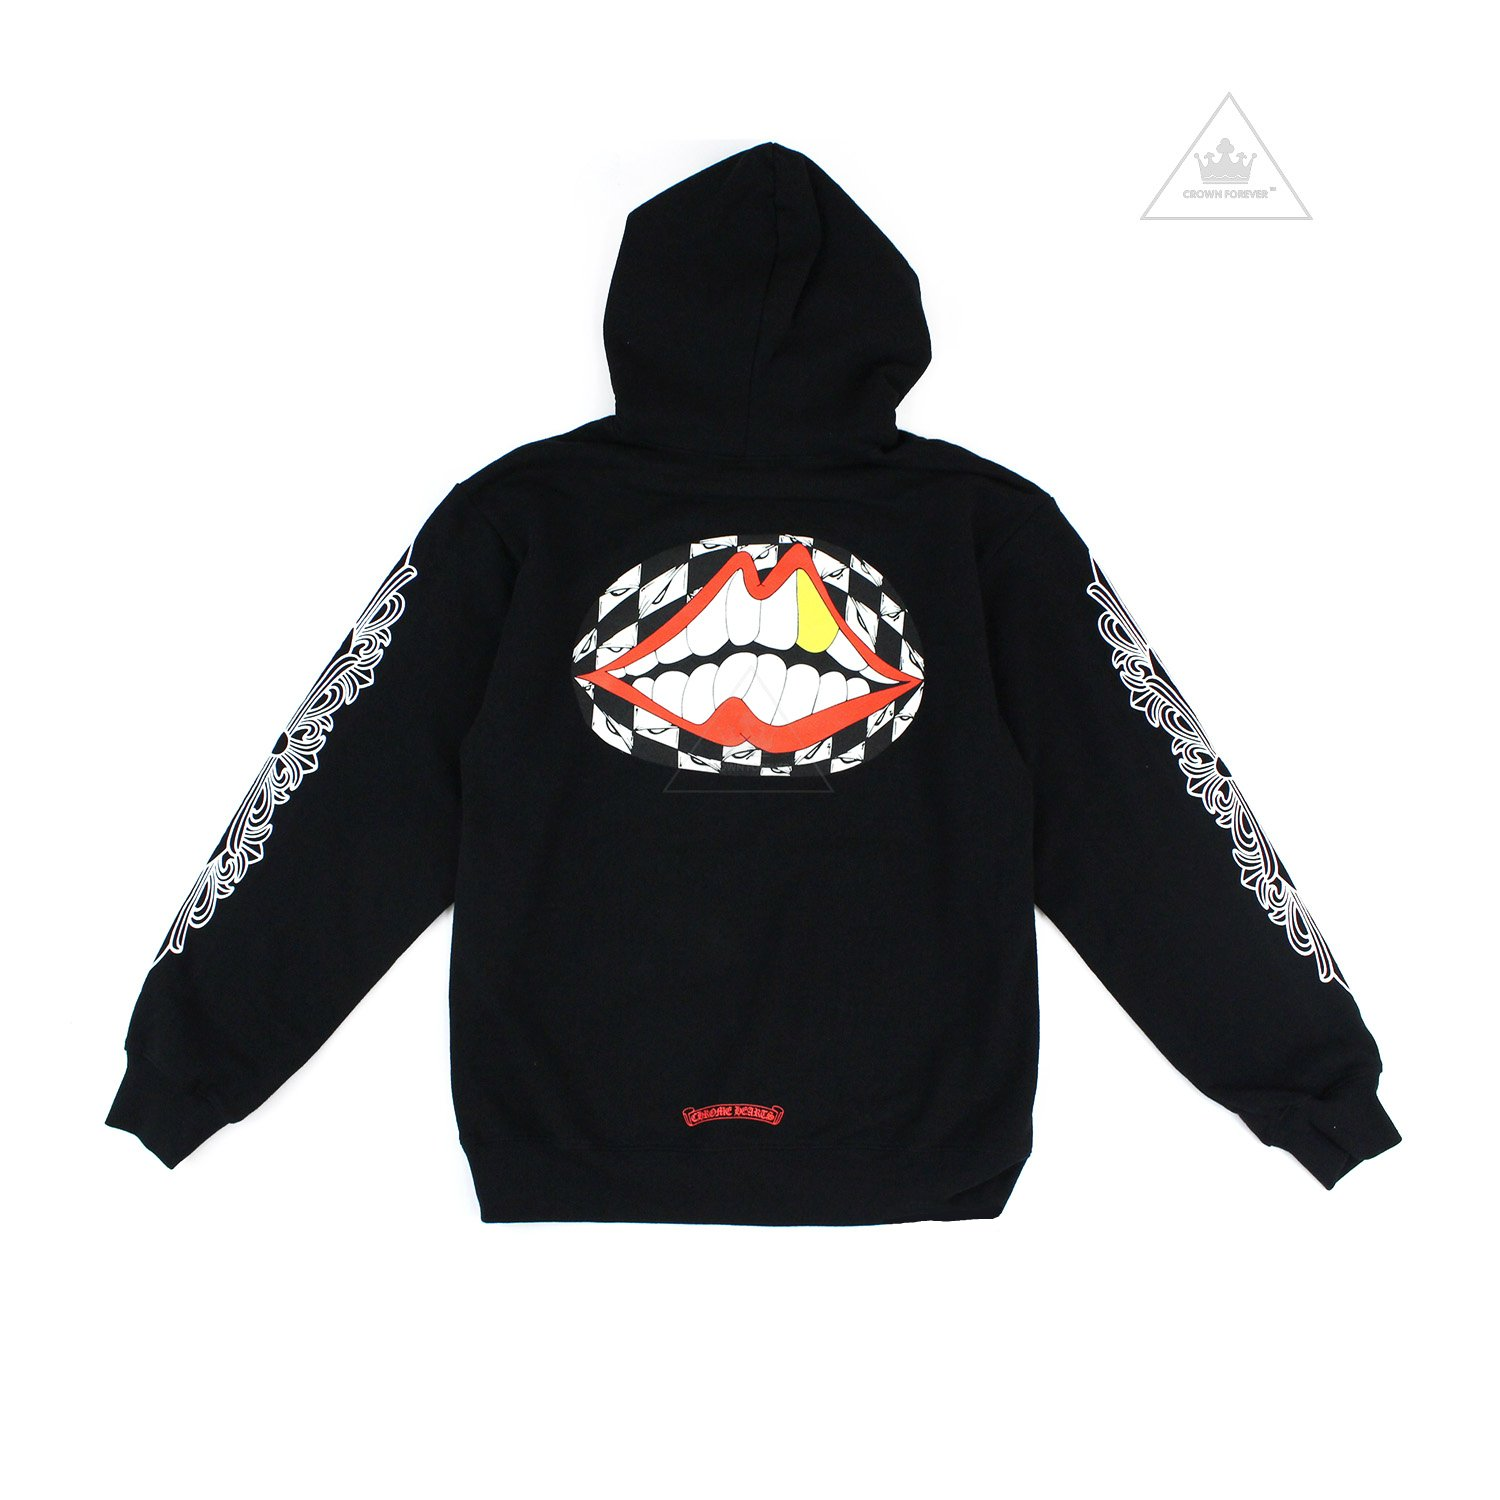 CH Matty Boy Pullover Floral Sleeve Hoodie (Glow in the Dark) by Chrome-Hearts, available on crownforeverla.com for $675 Kylie Jenner Outerwear Exact Product